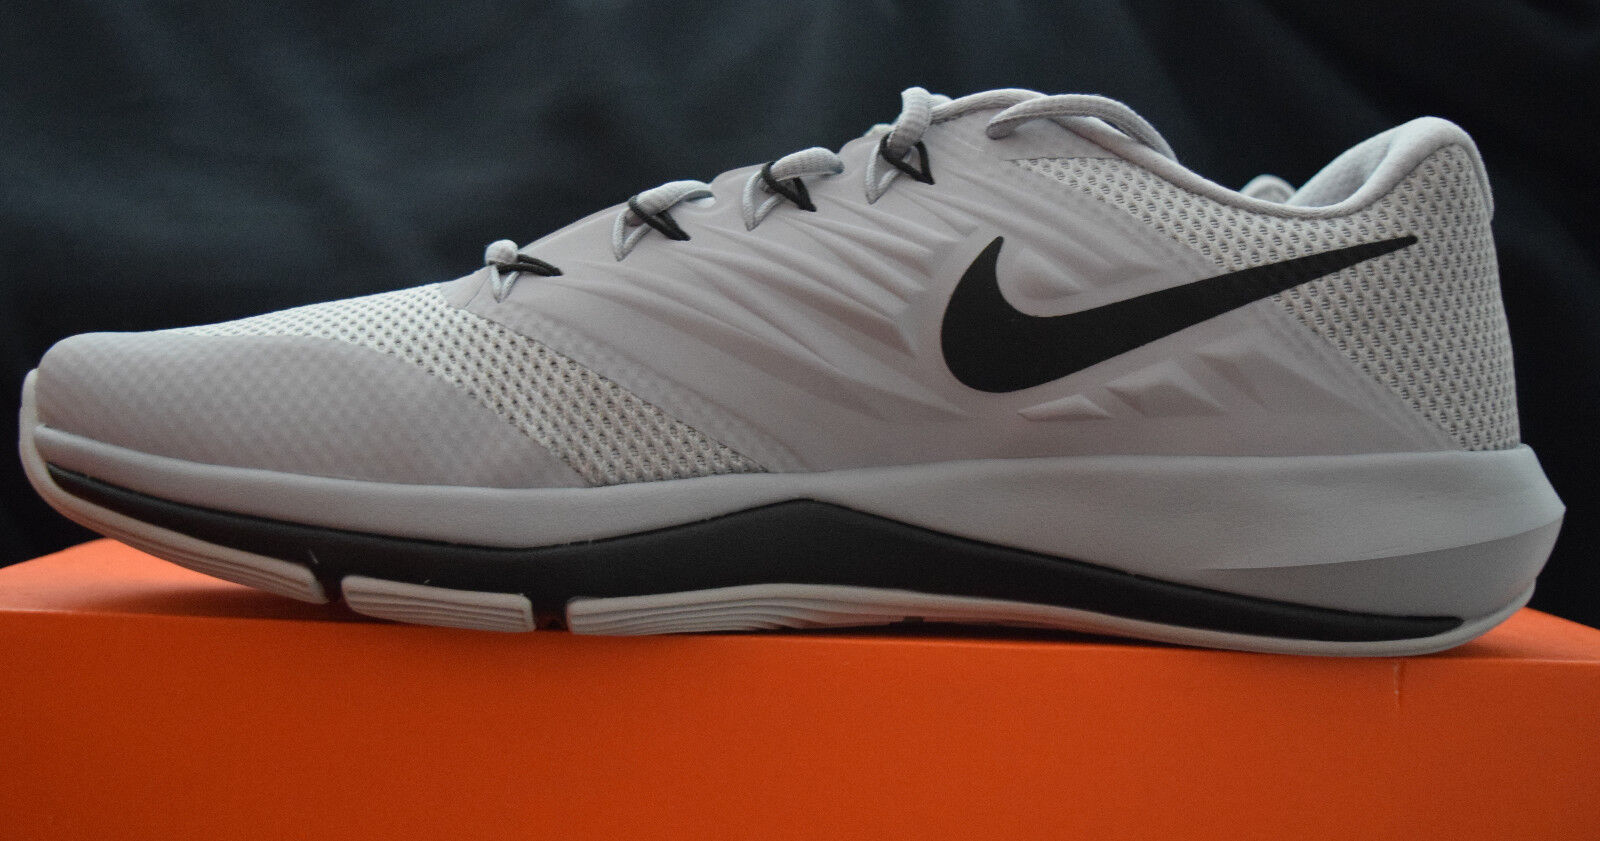 New In Box Nike Lunar Prime Iron II Mens Training Shoes Sz 13 Wolf Grey Black